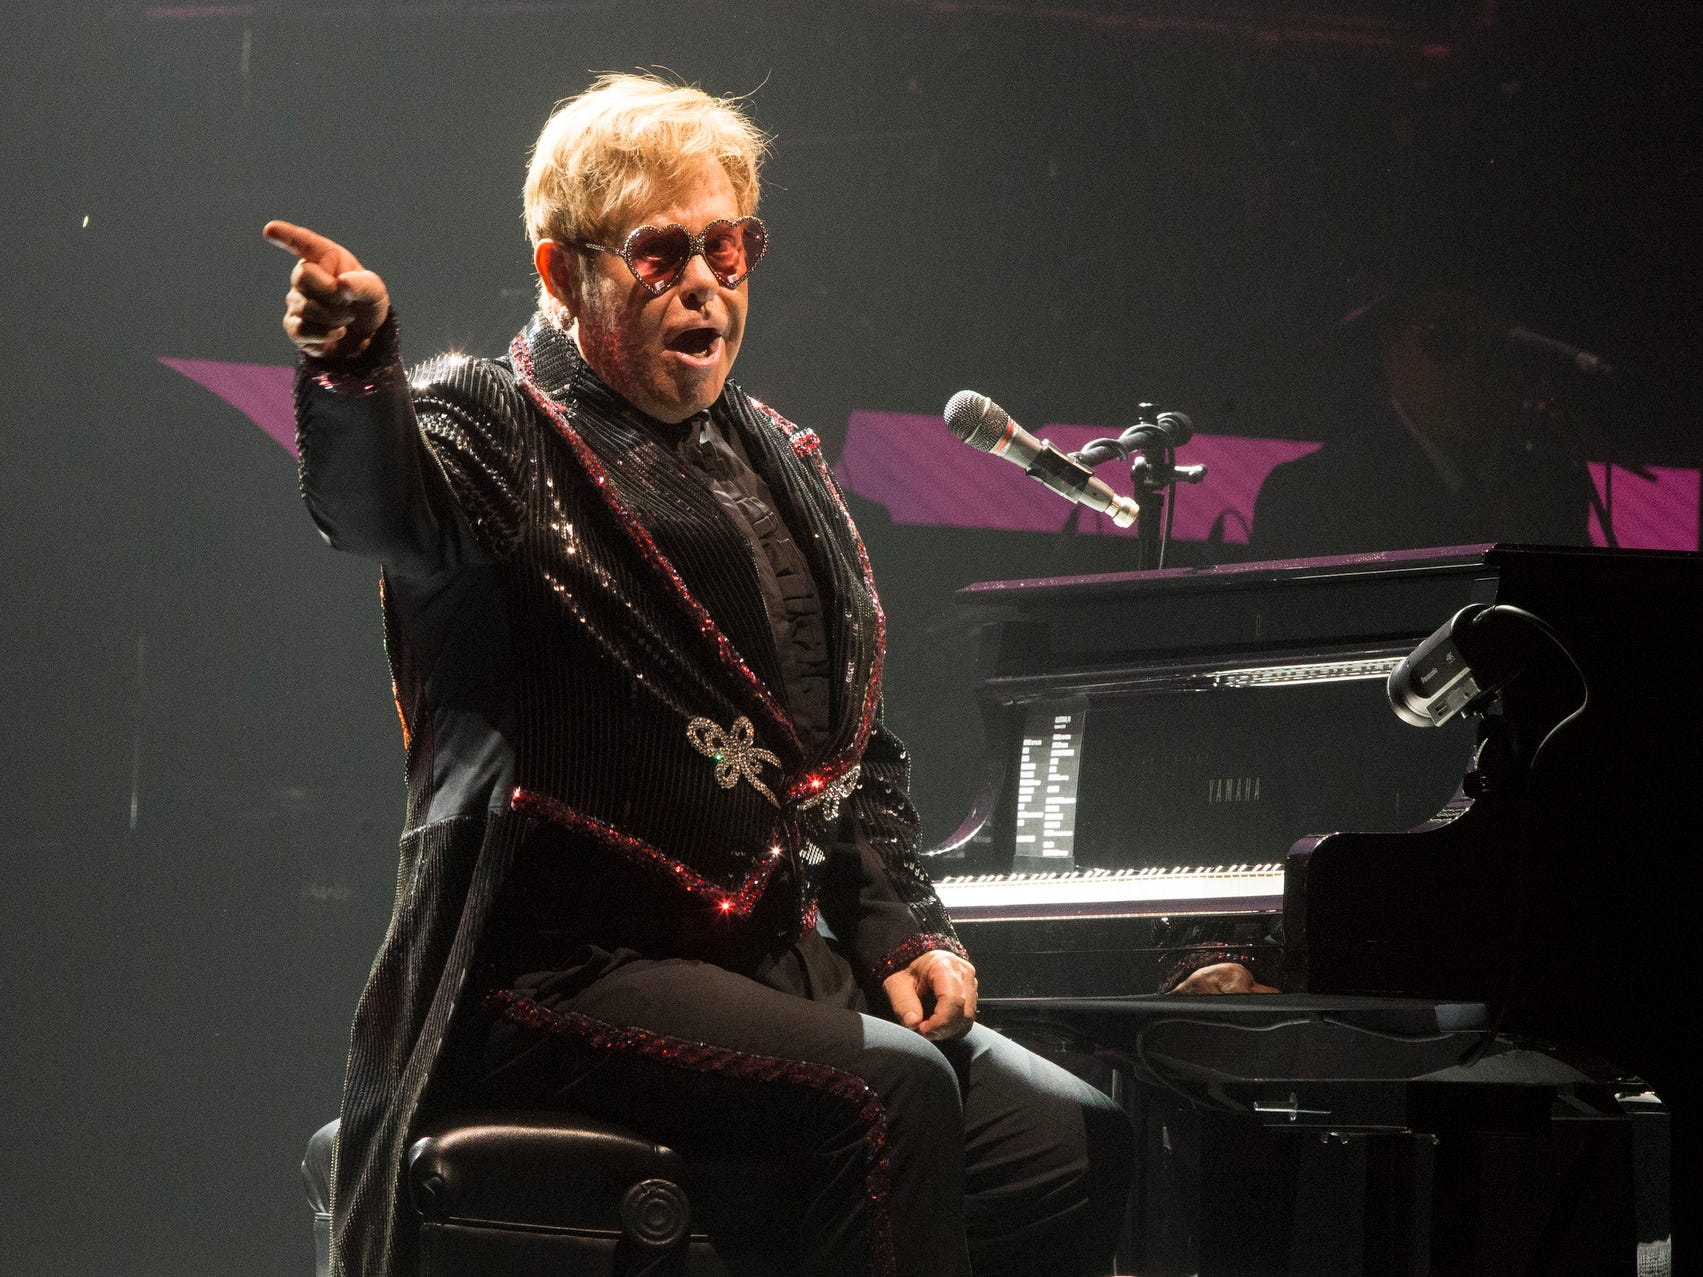 OCT. 24